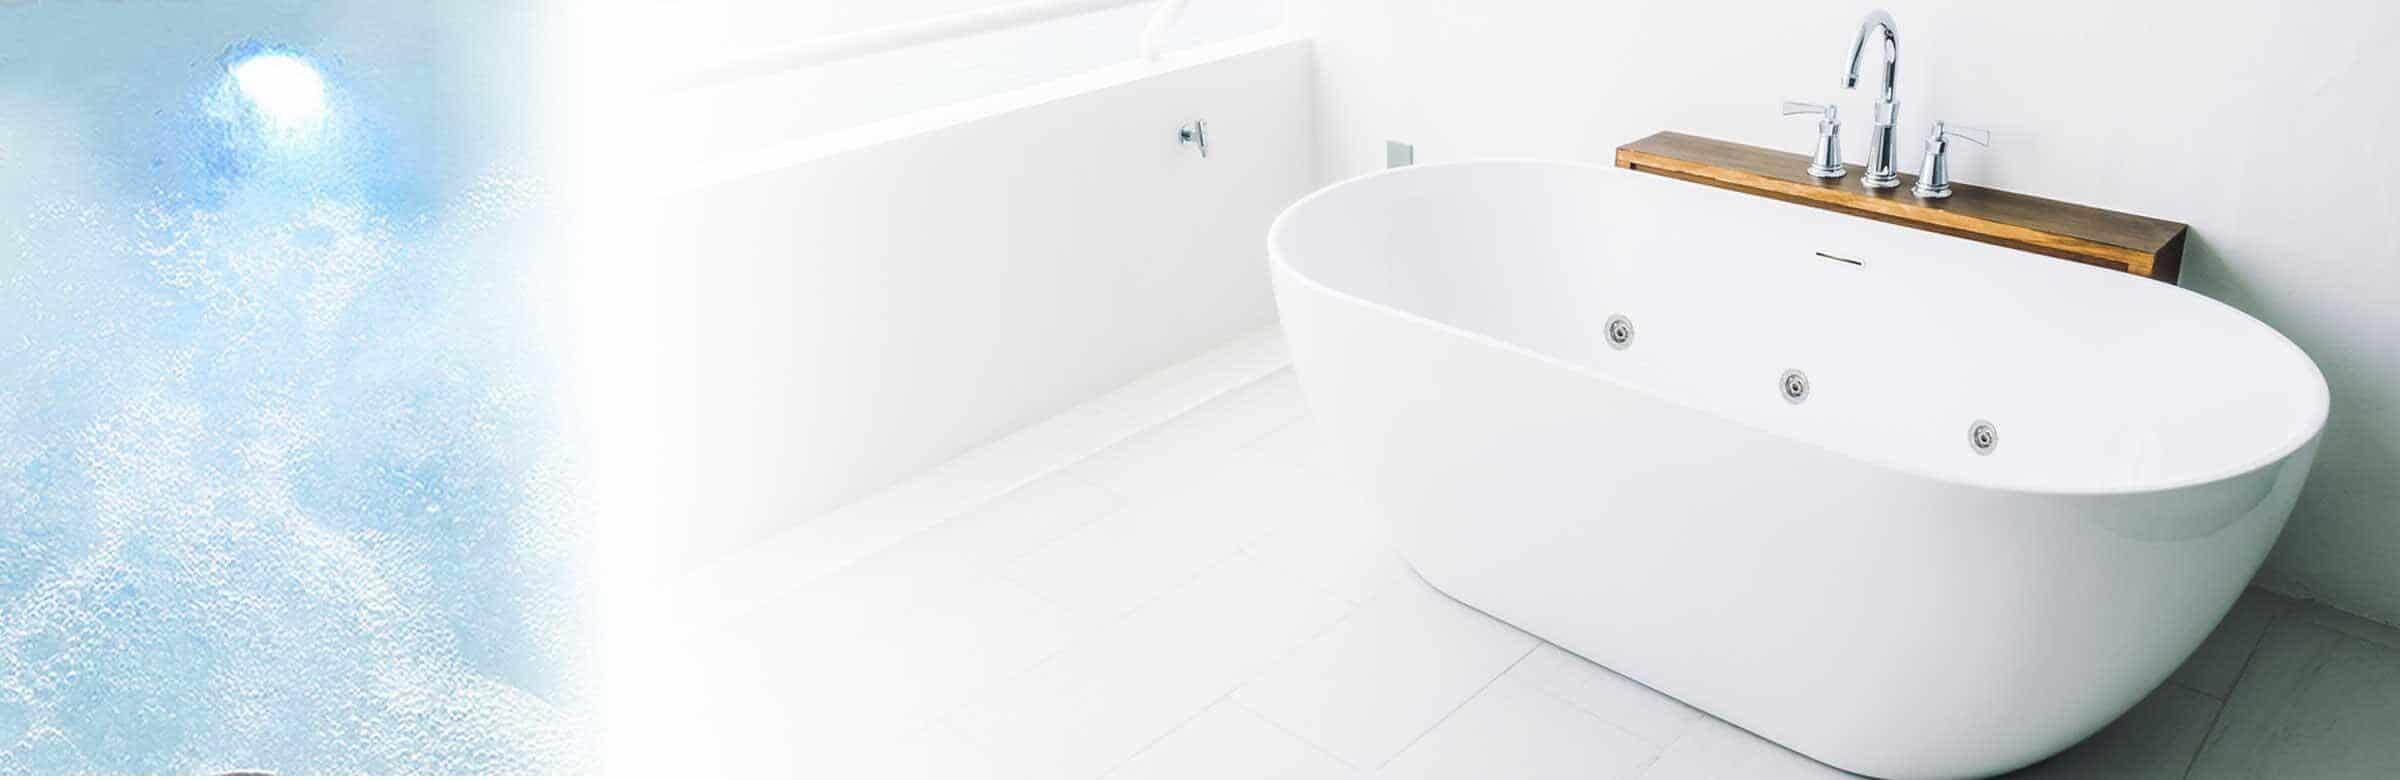 Whirlpool Baths and Jacuzzi from The Whirlpool Bath Shop